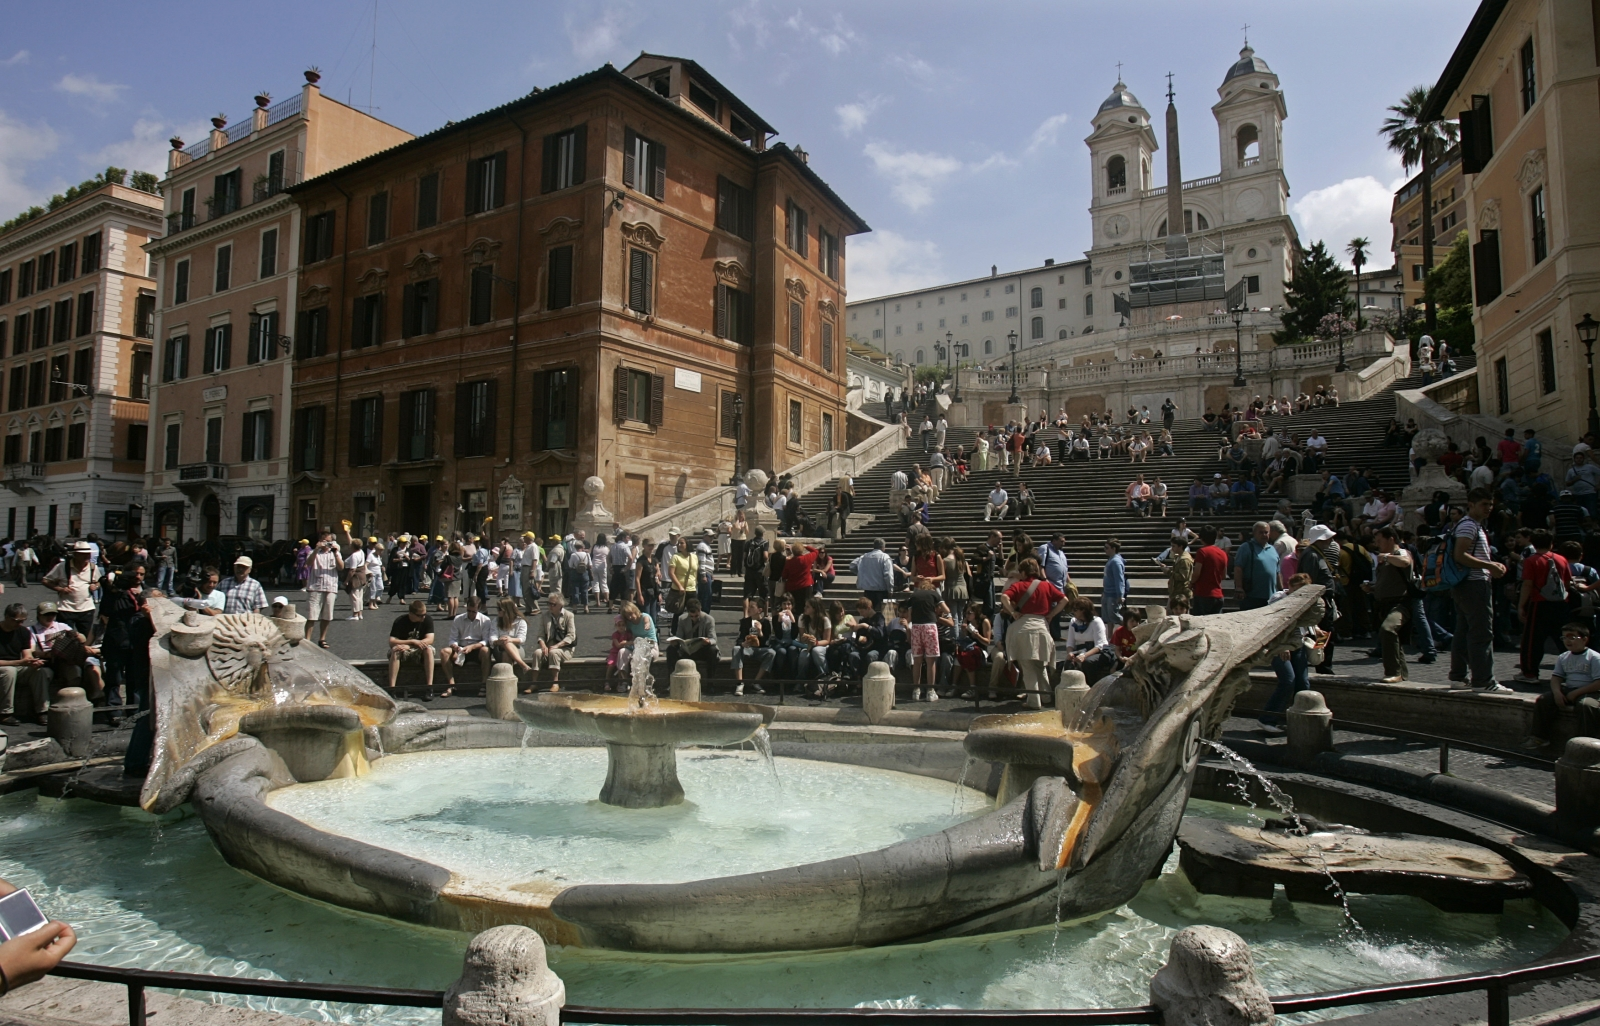 Tourists crowd about the famed Fontana della Barcaccia (Fountain of the Old Boat) at the foot of the Spanish Steps in Rome